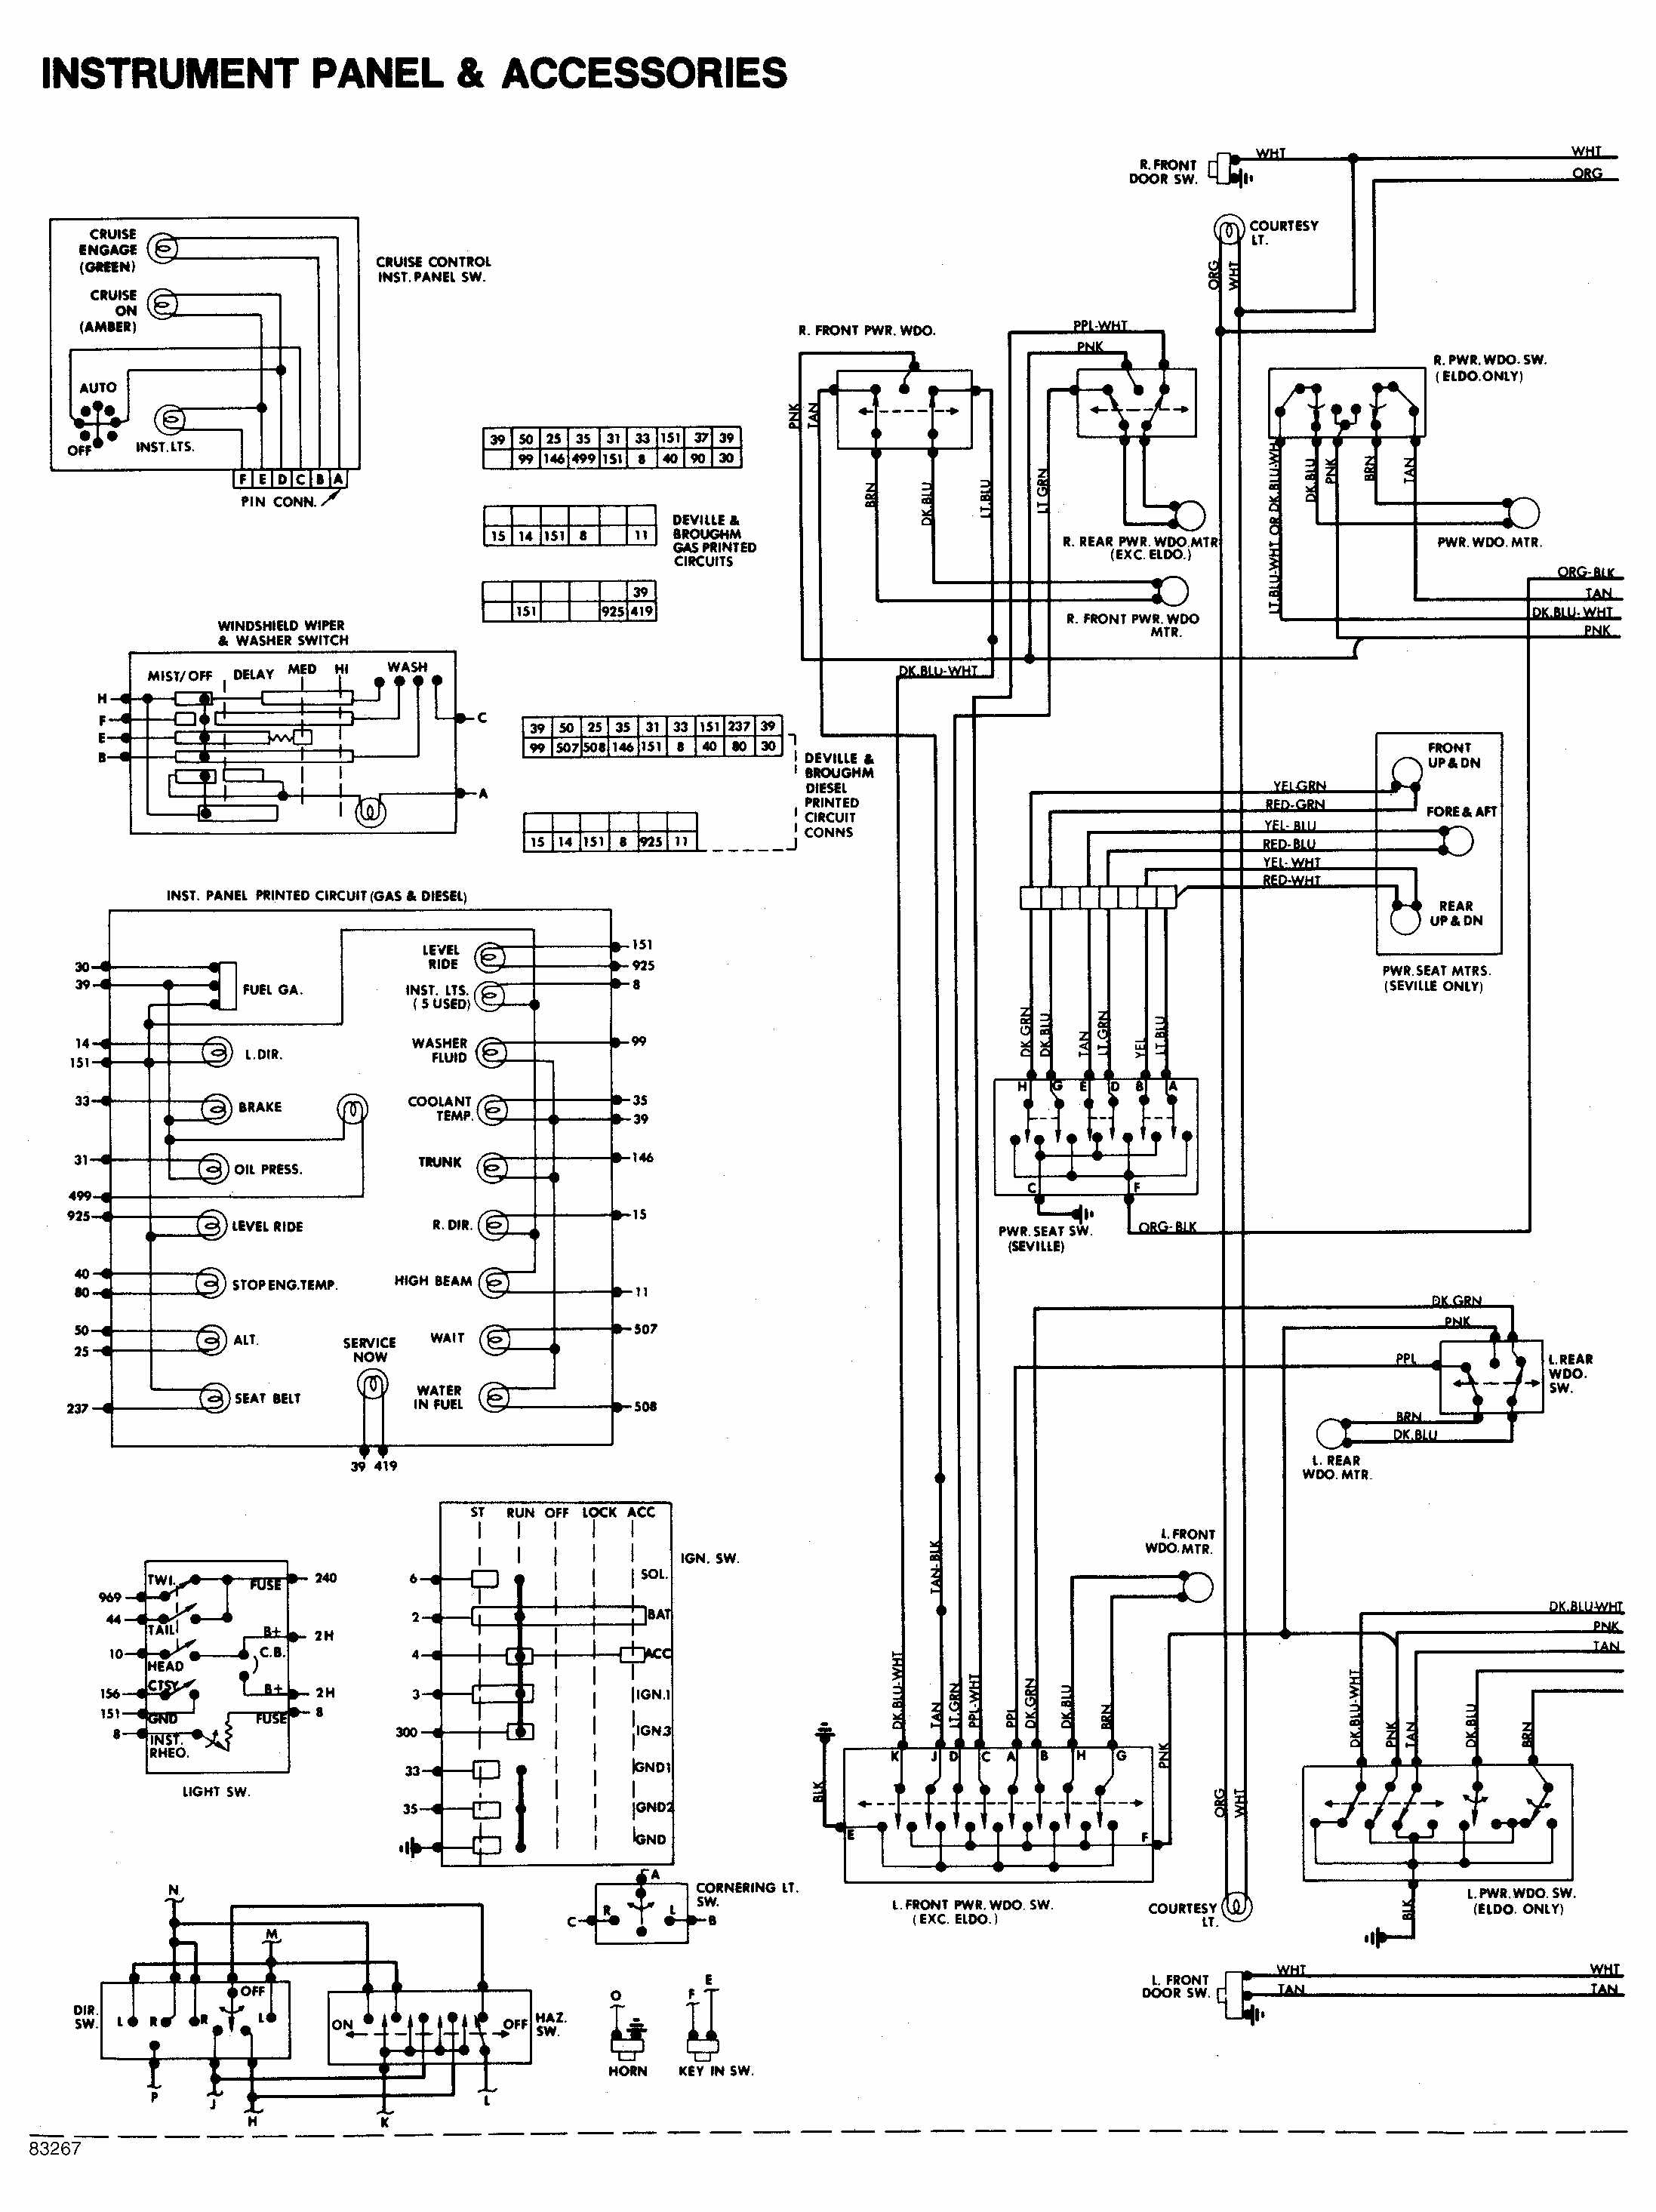 1969 Corvette Wiring Diagram Exterior Library Vw Trike Diagrams Moreover 65 Mustang Harness 1984 Cadillac Deville Instrument Panel And Accessories Drawing A